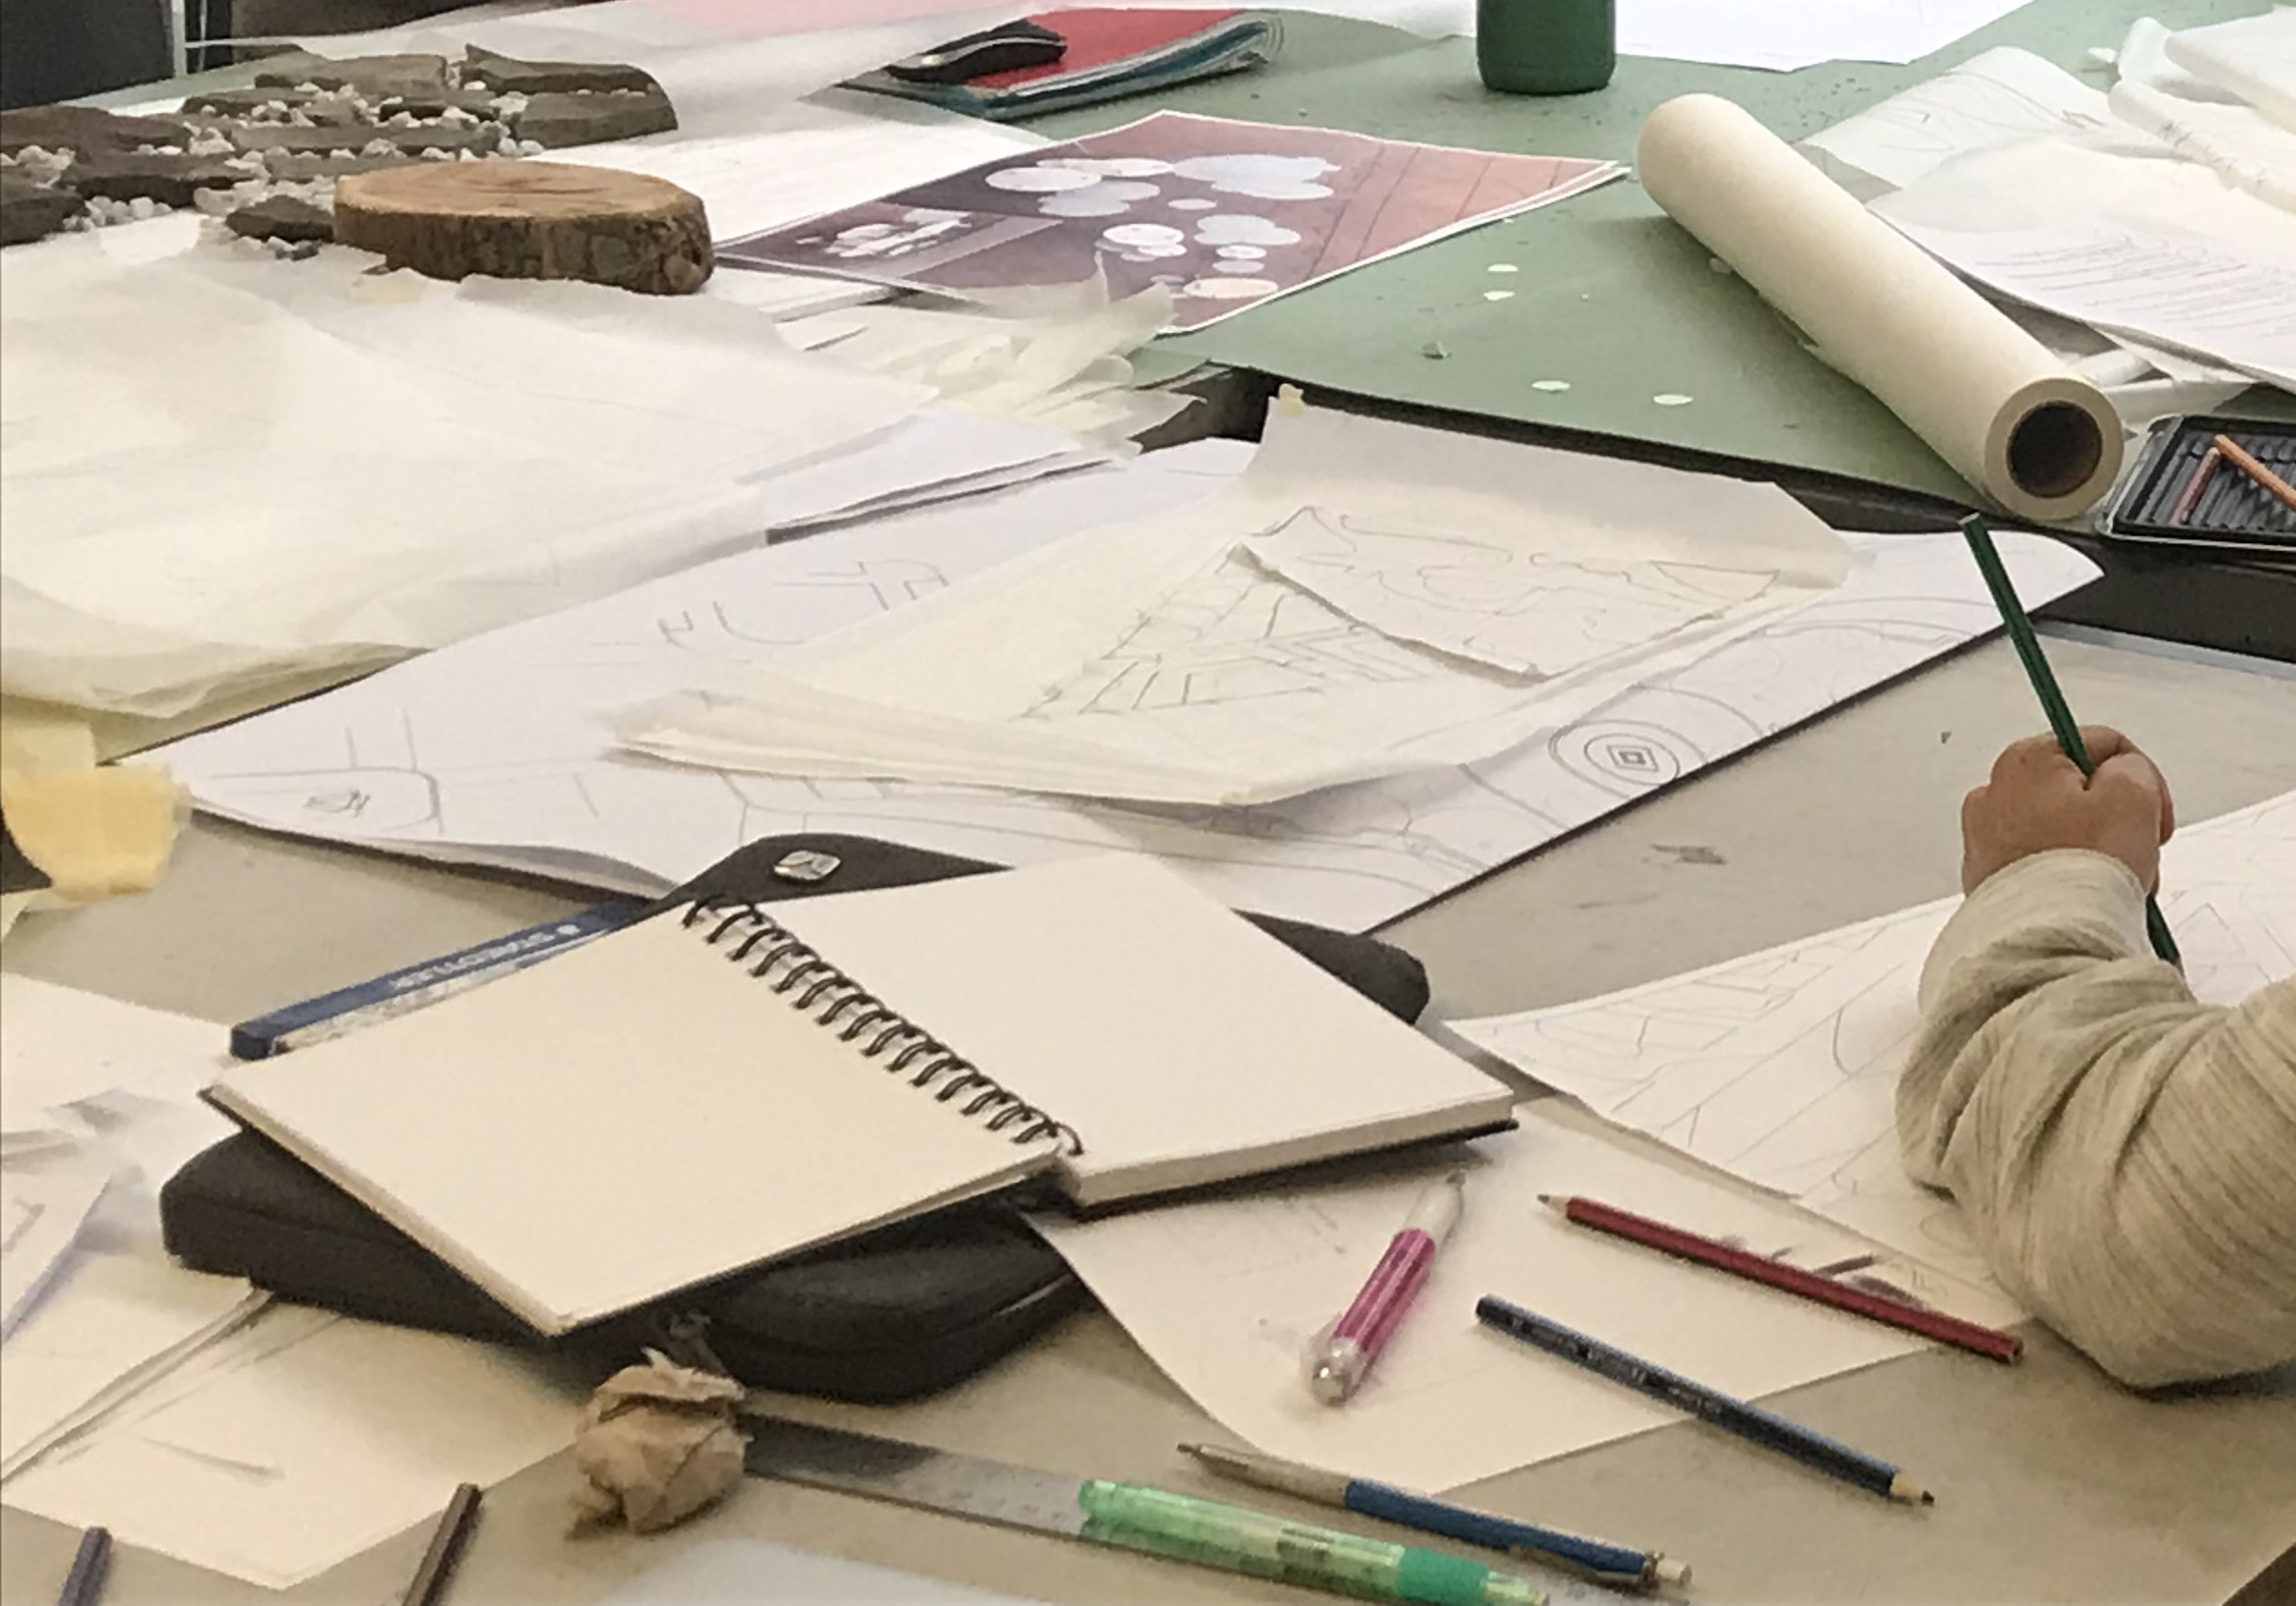 Rutgers Spring 2019 Schedule Dept. of Landscape Architecture at Rutgers